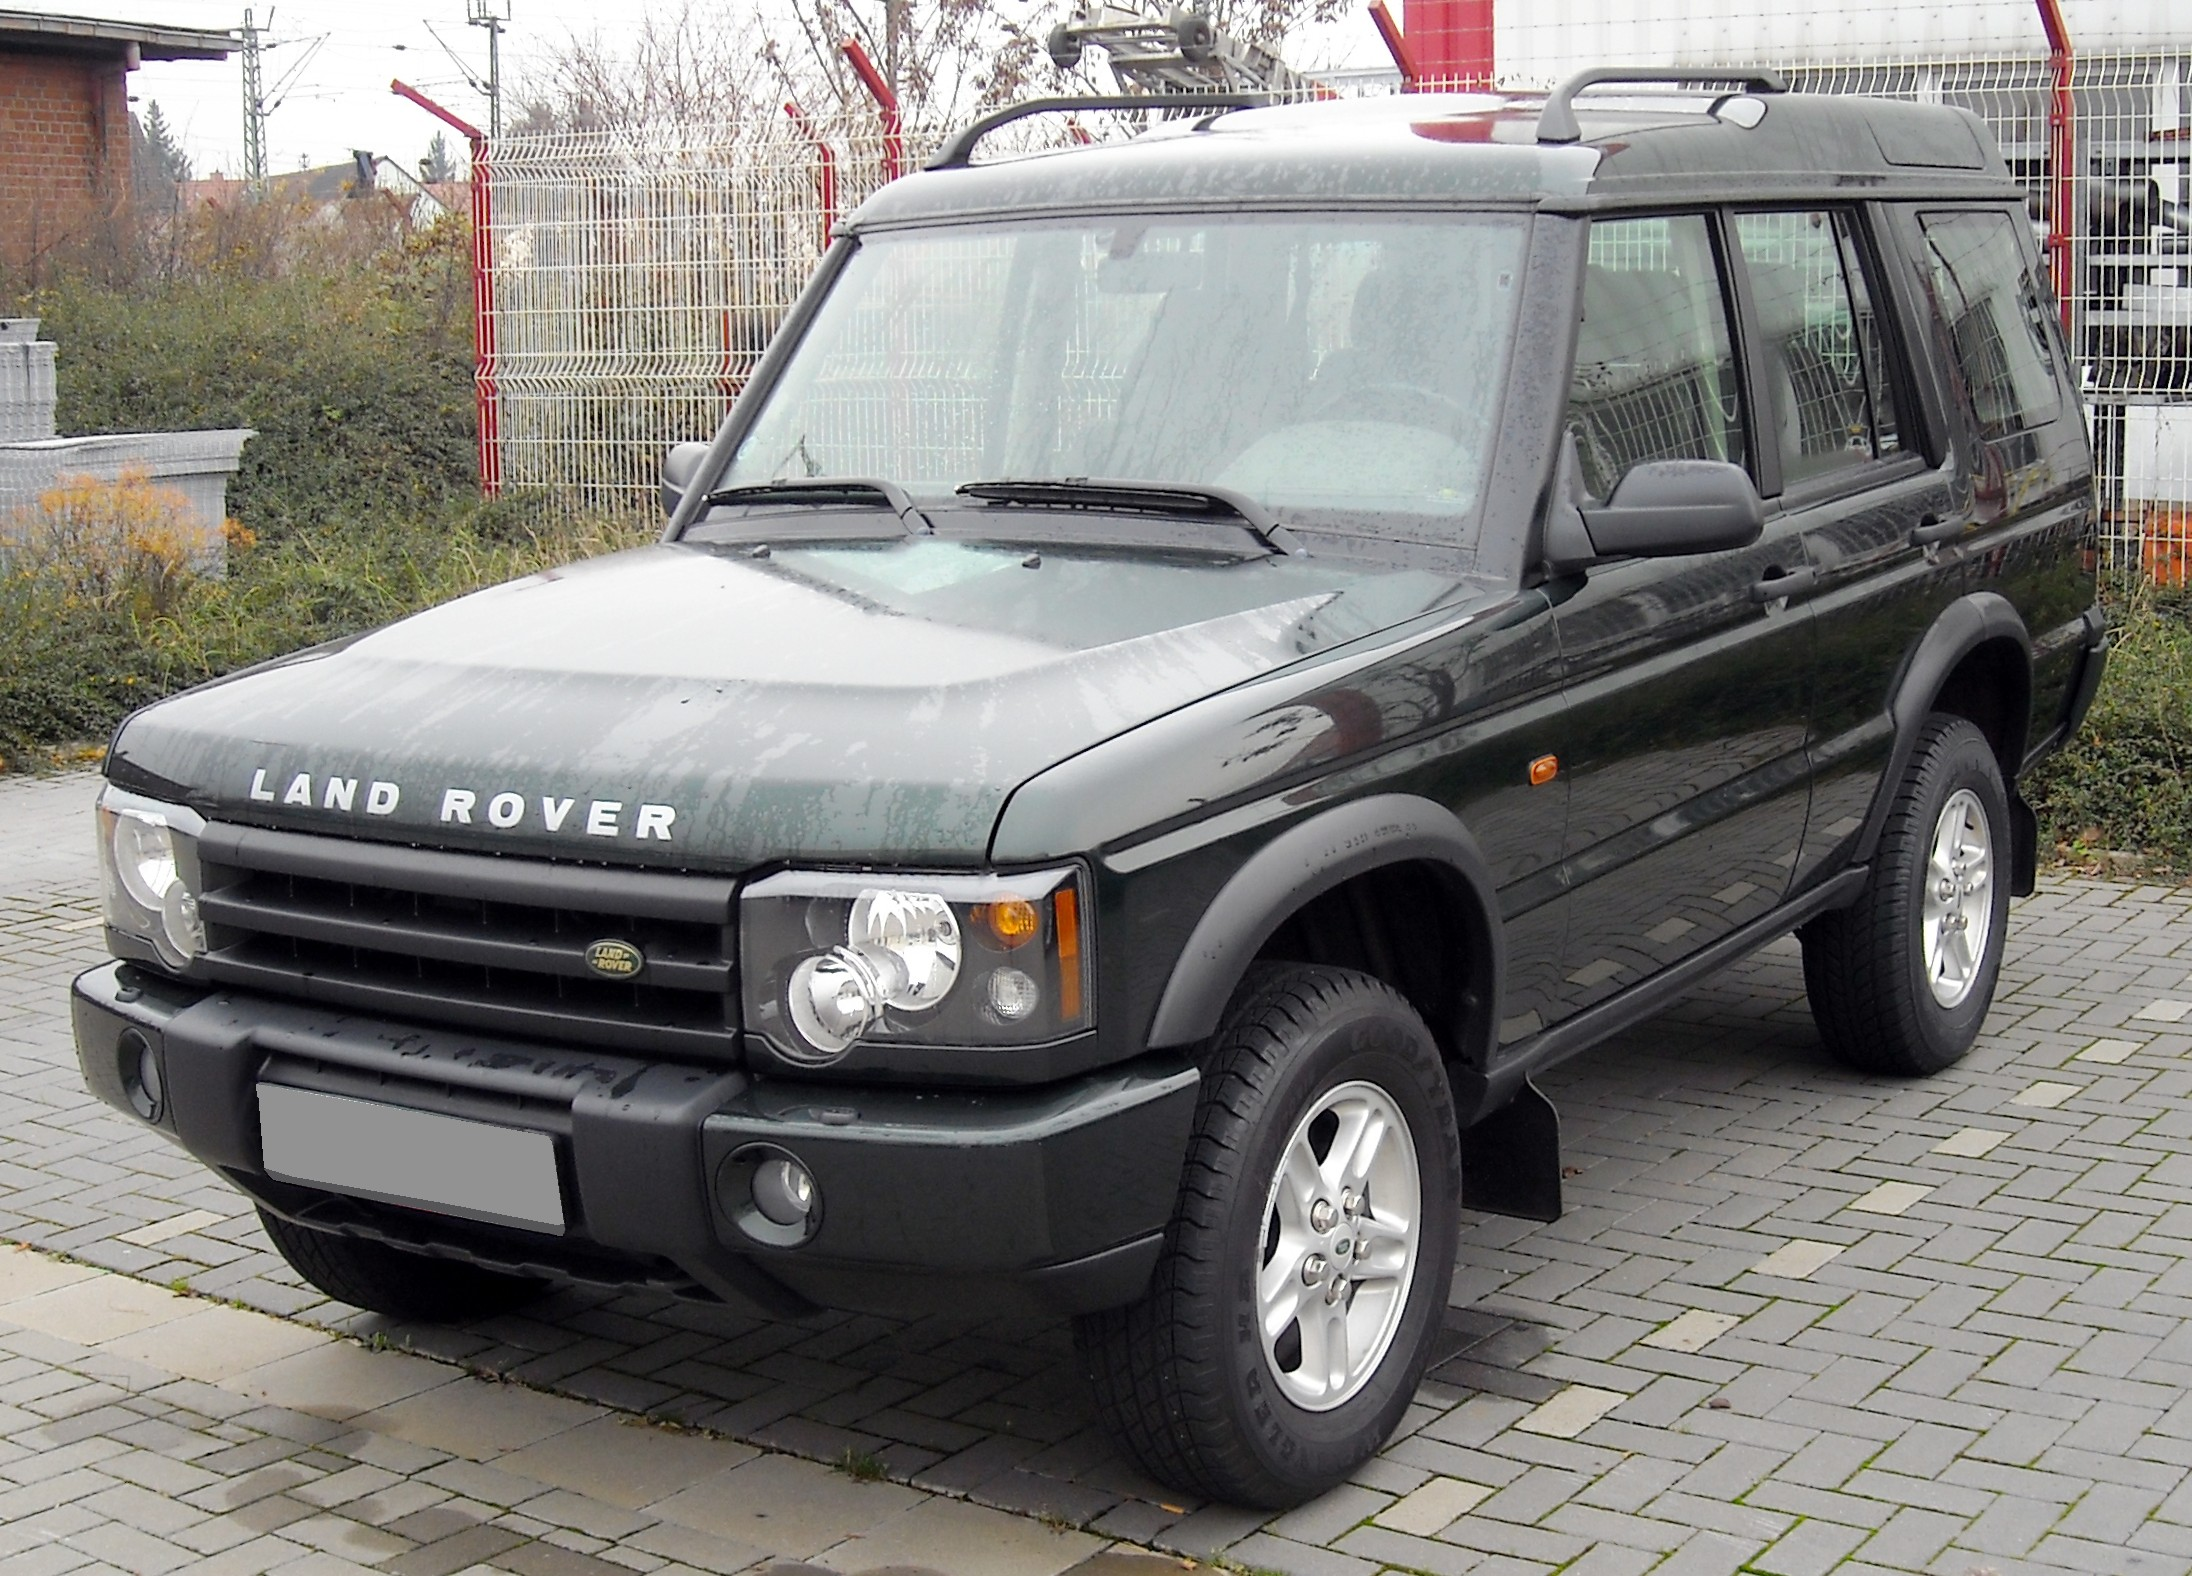 2003 Land Rover Discovery Image 10